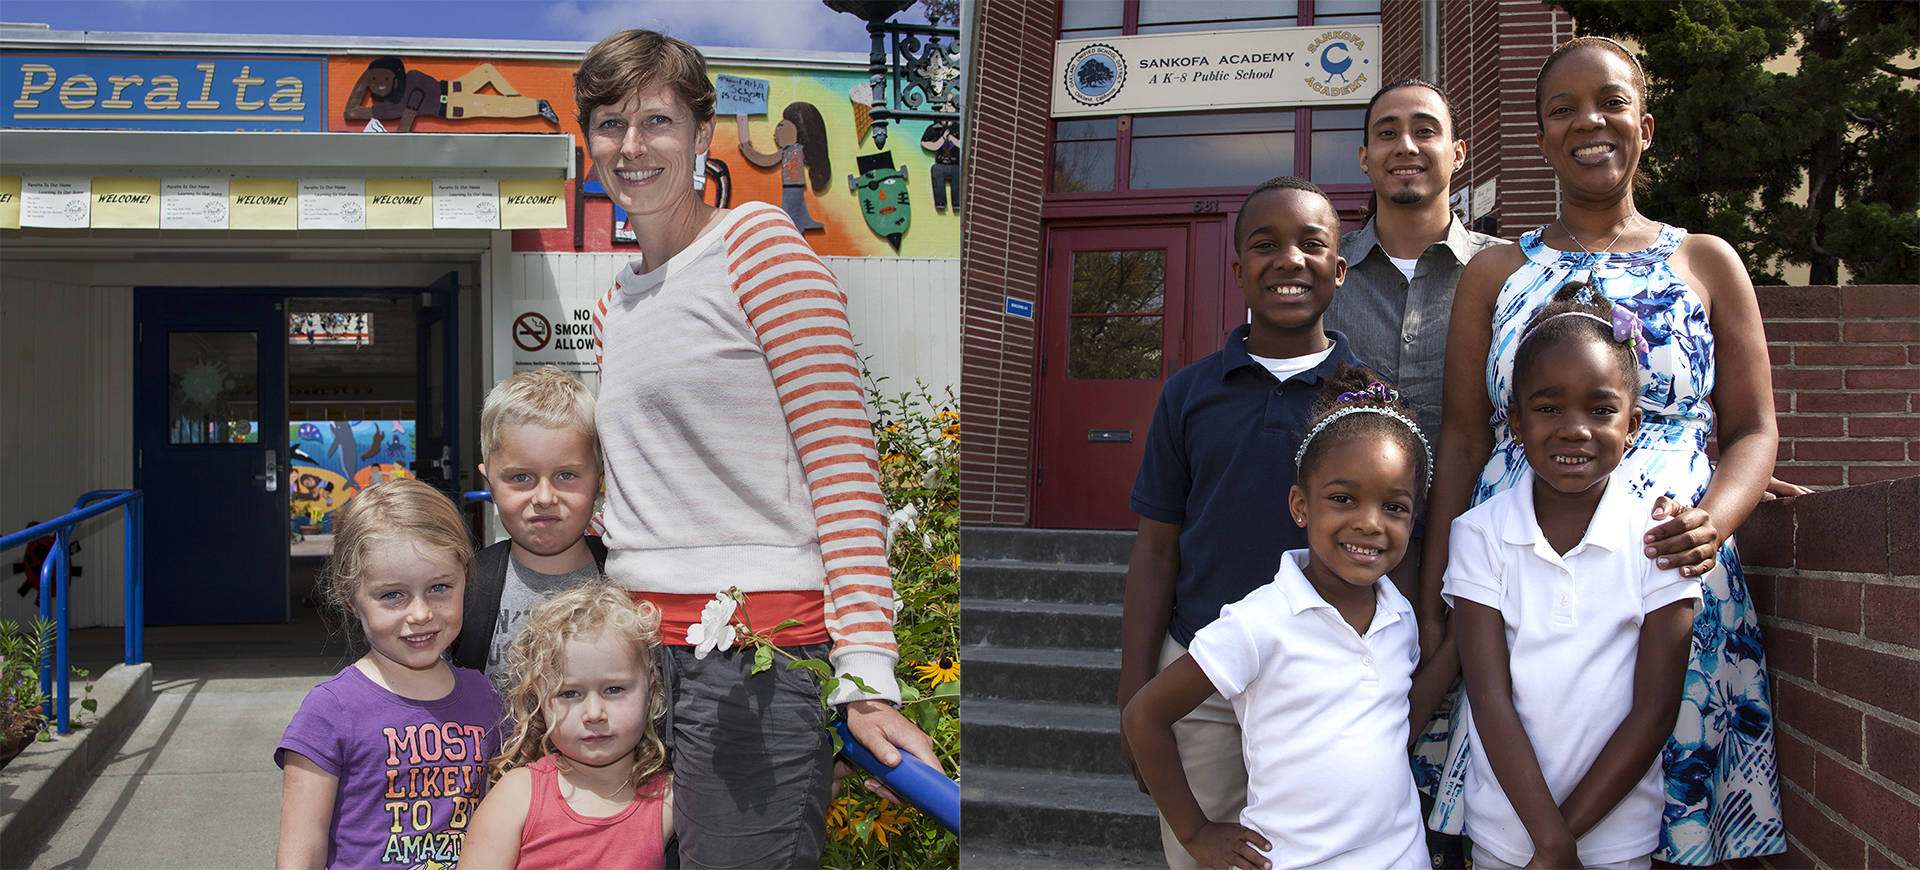 Left photo: Eleanor Wohlfeiler poses for a photo with her three children in front of Peralta Elementary School in Oakland. Right photo: Kristin Smith and her family outside Sankofa Academy in Oakland. Brittany Hosea-Small